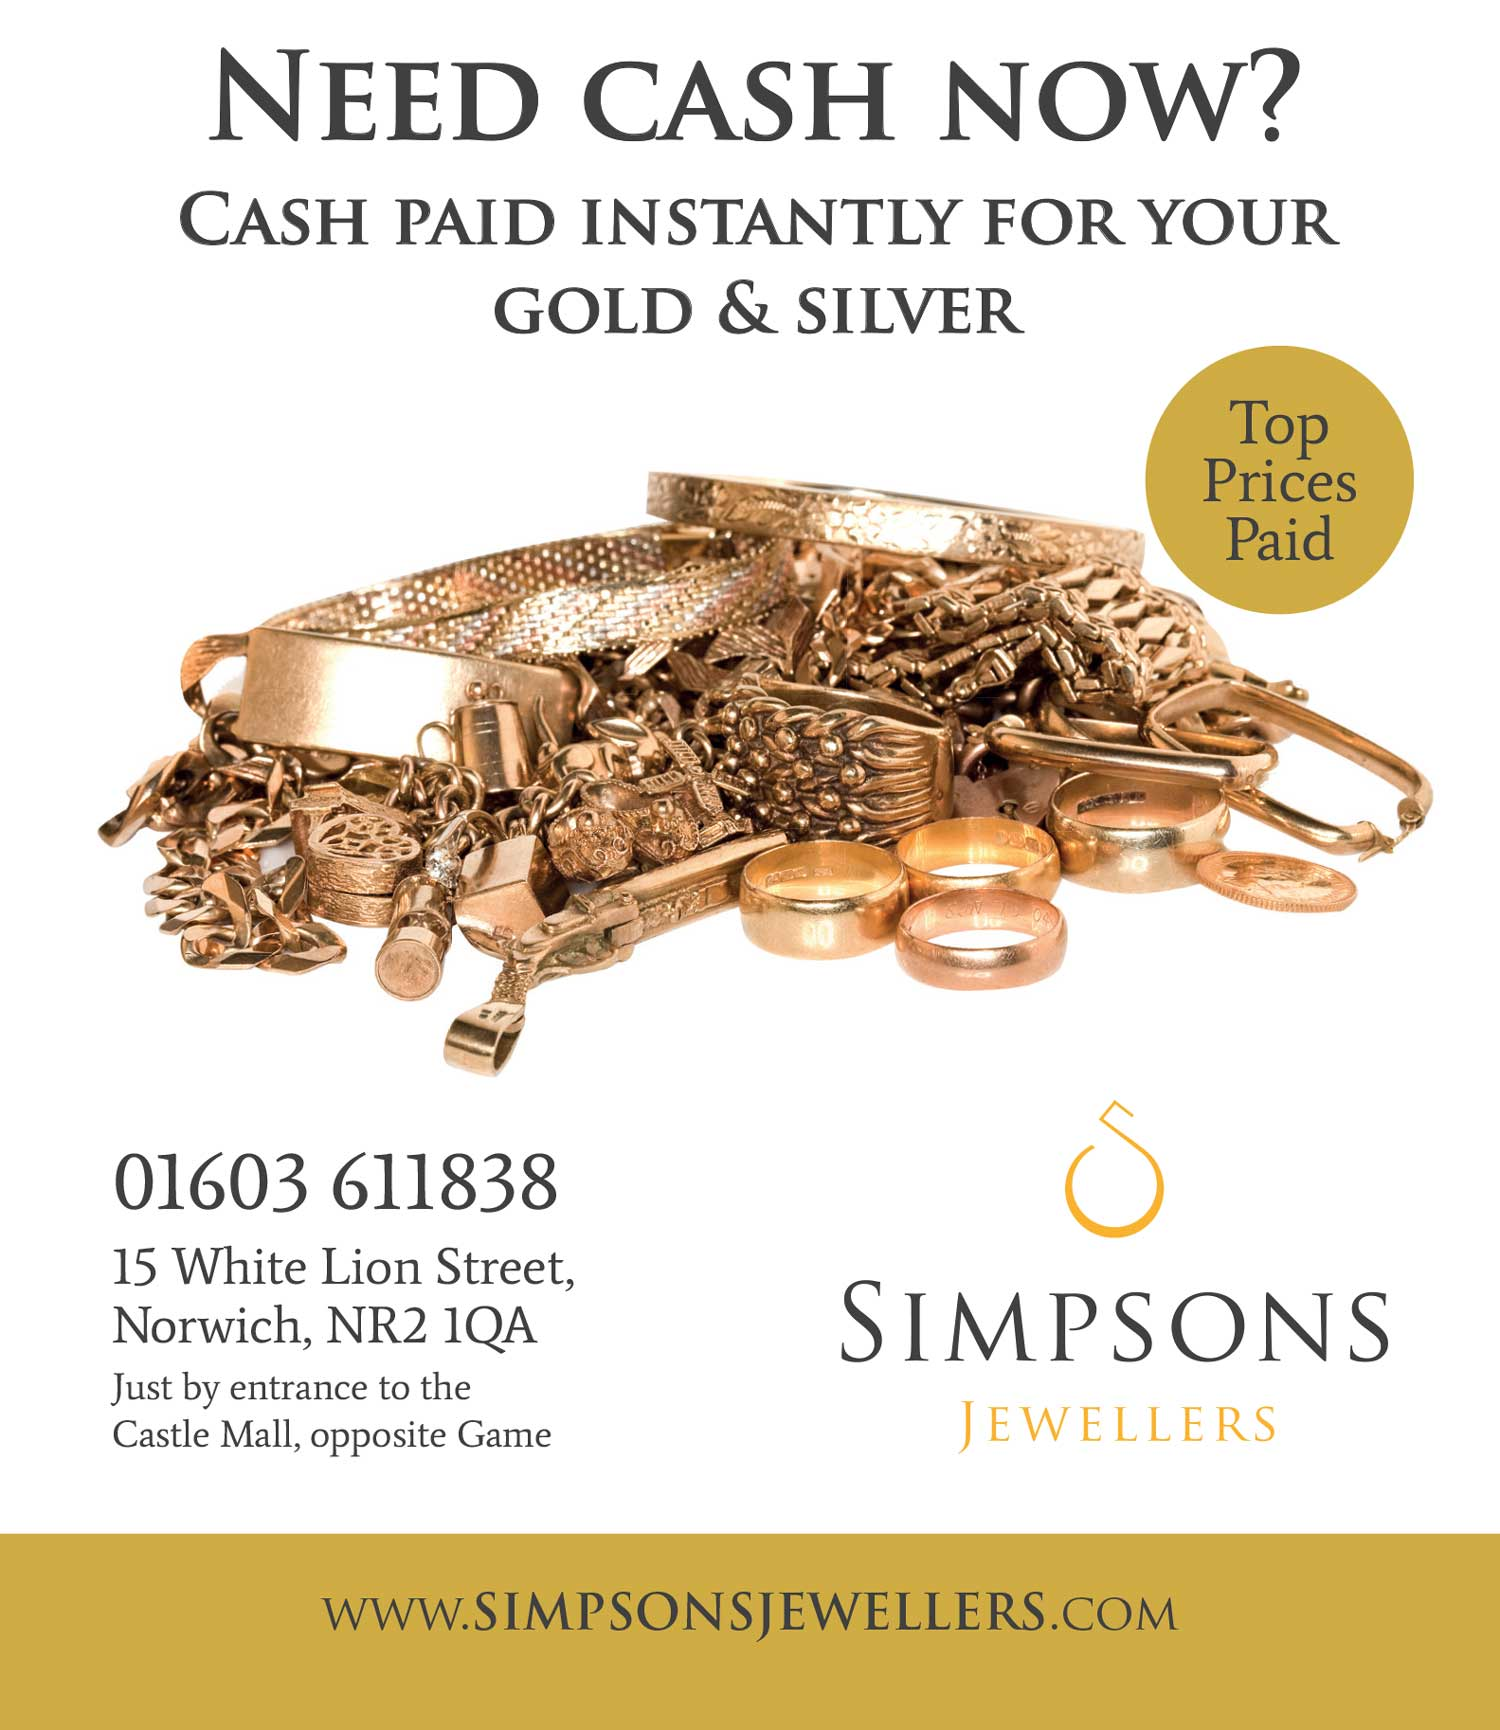 Newspaper advertising for Simpsons Jewellers